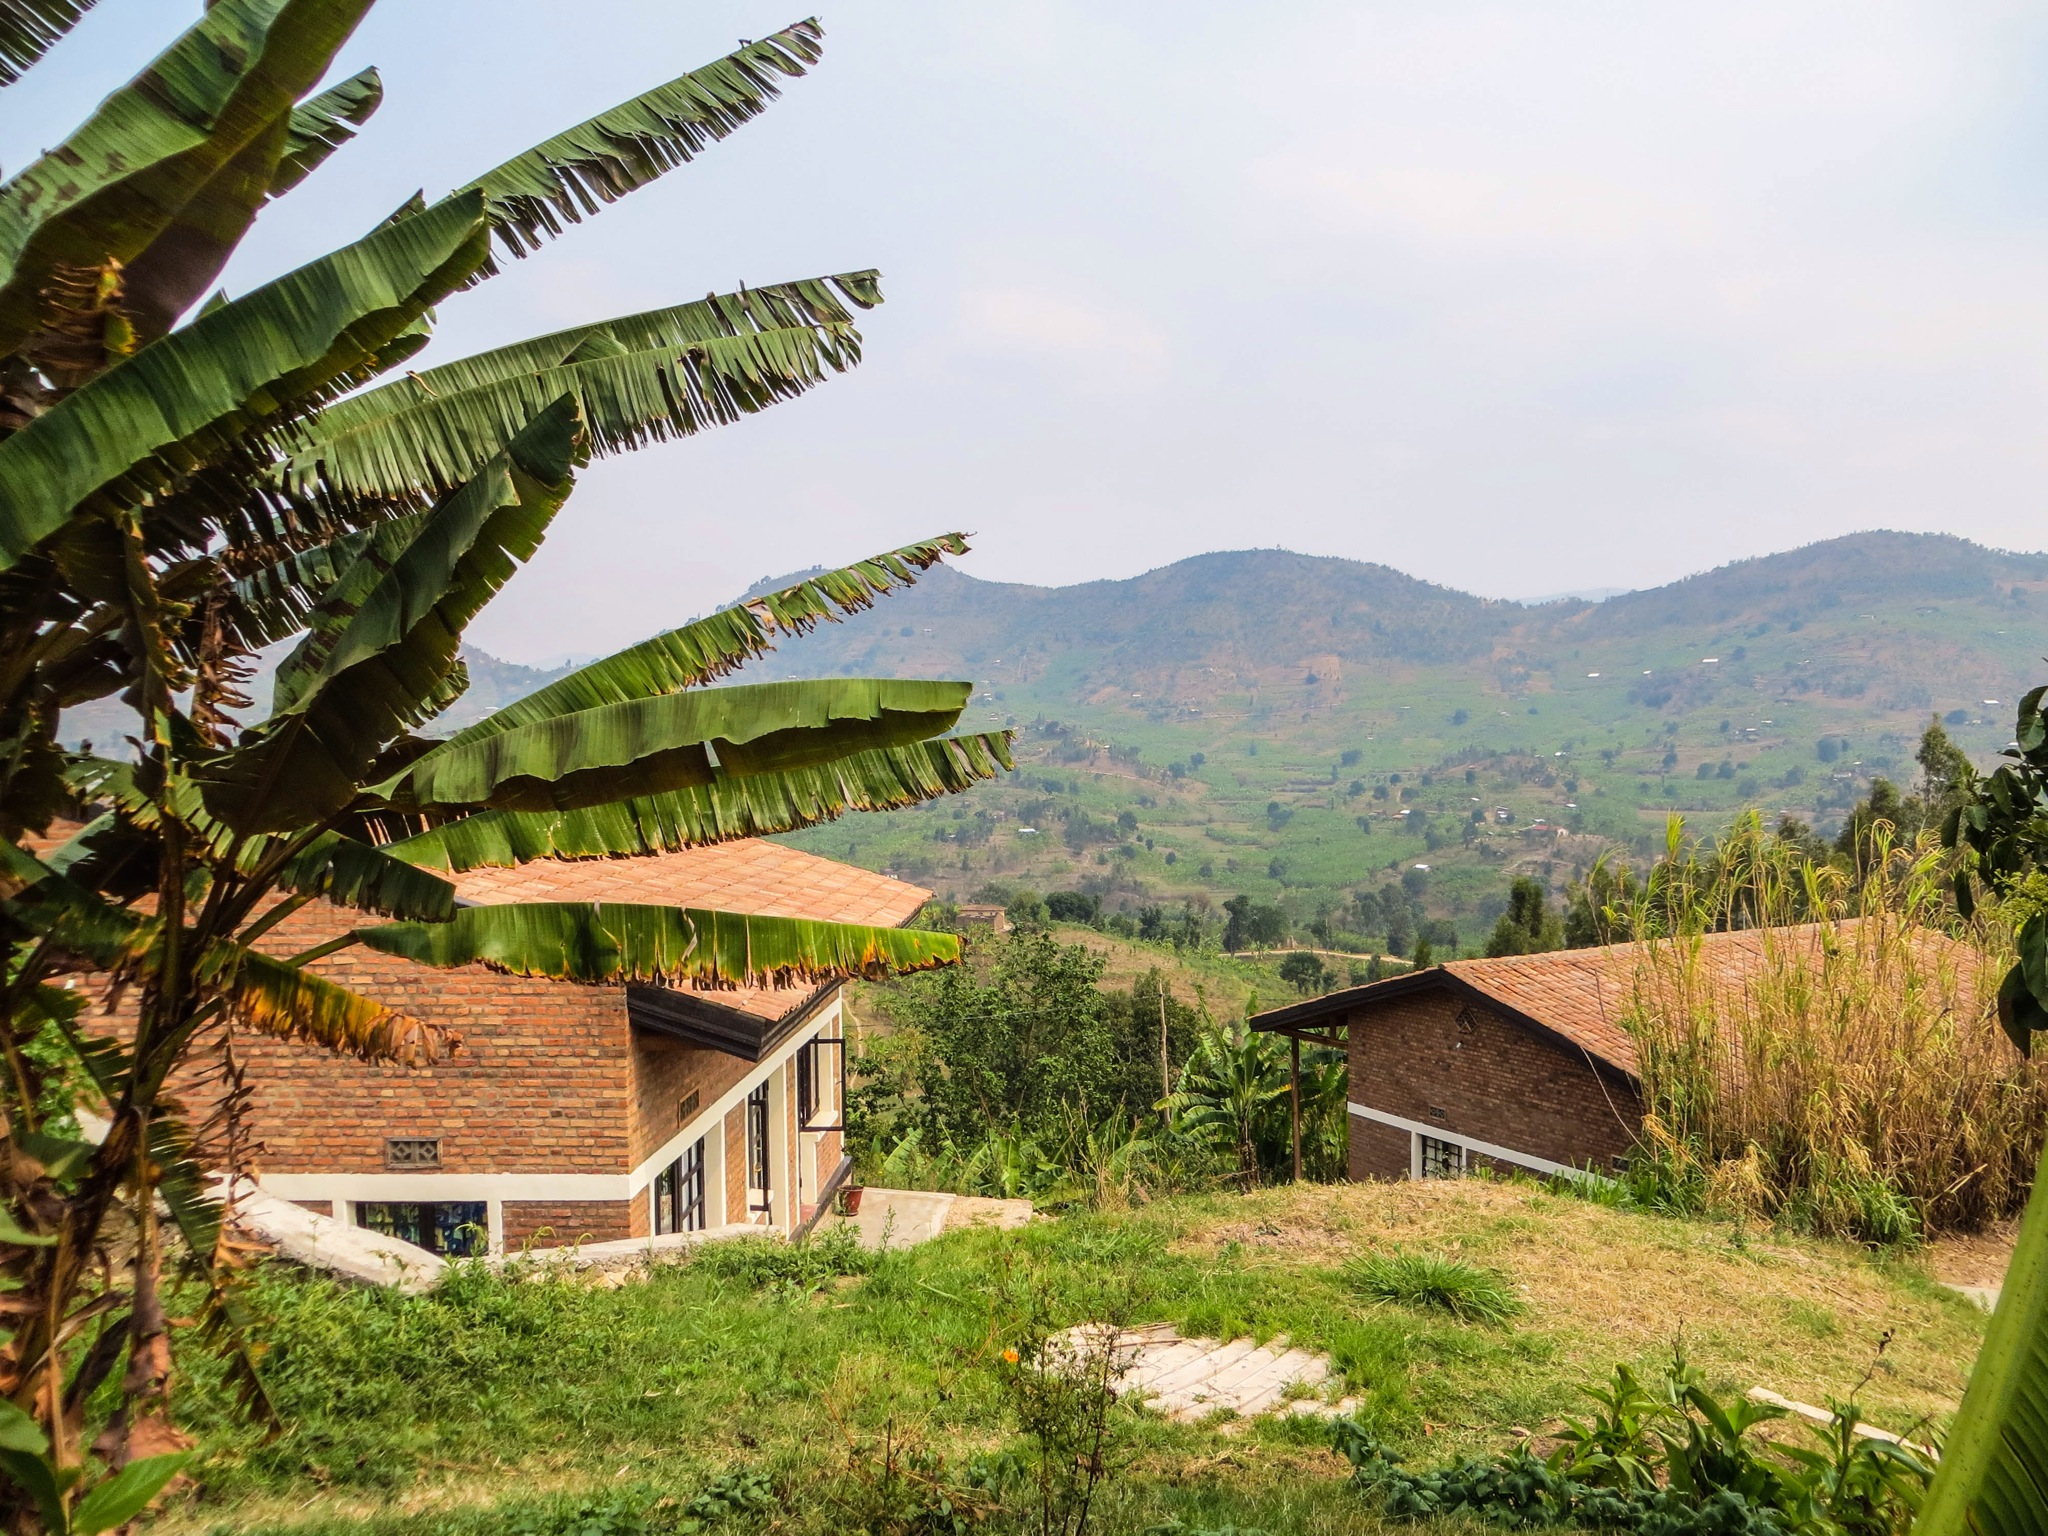 While in Rwanda, I had the chance to visit two organizations that are ...